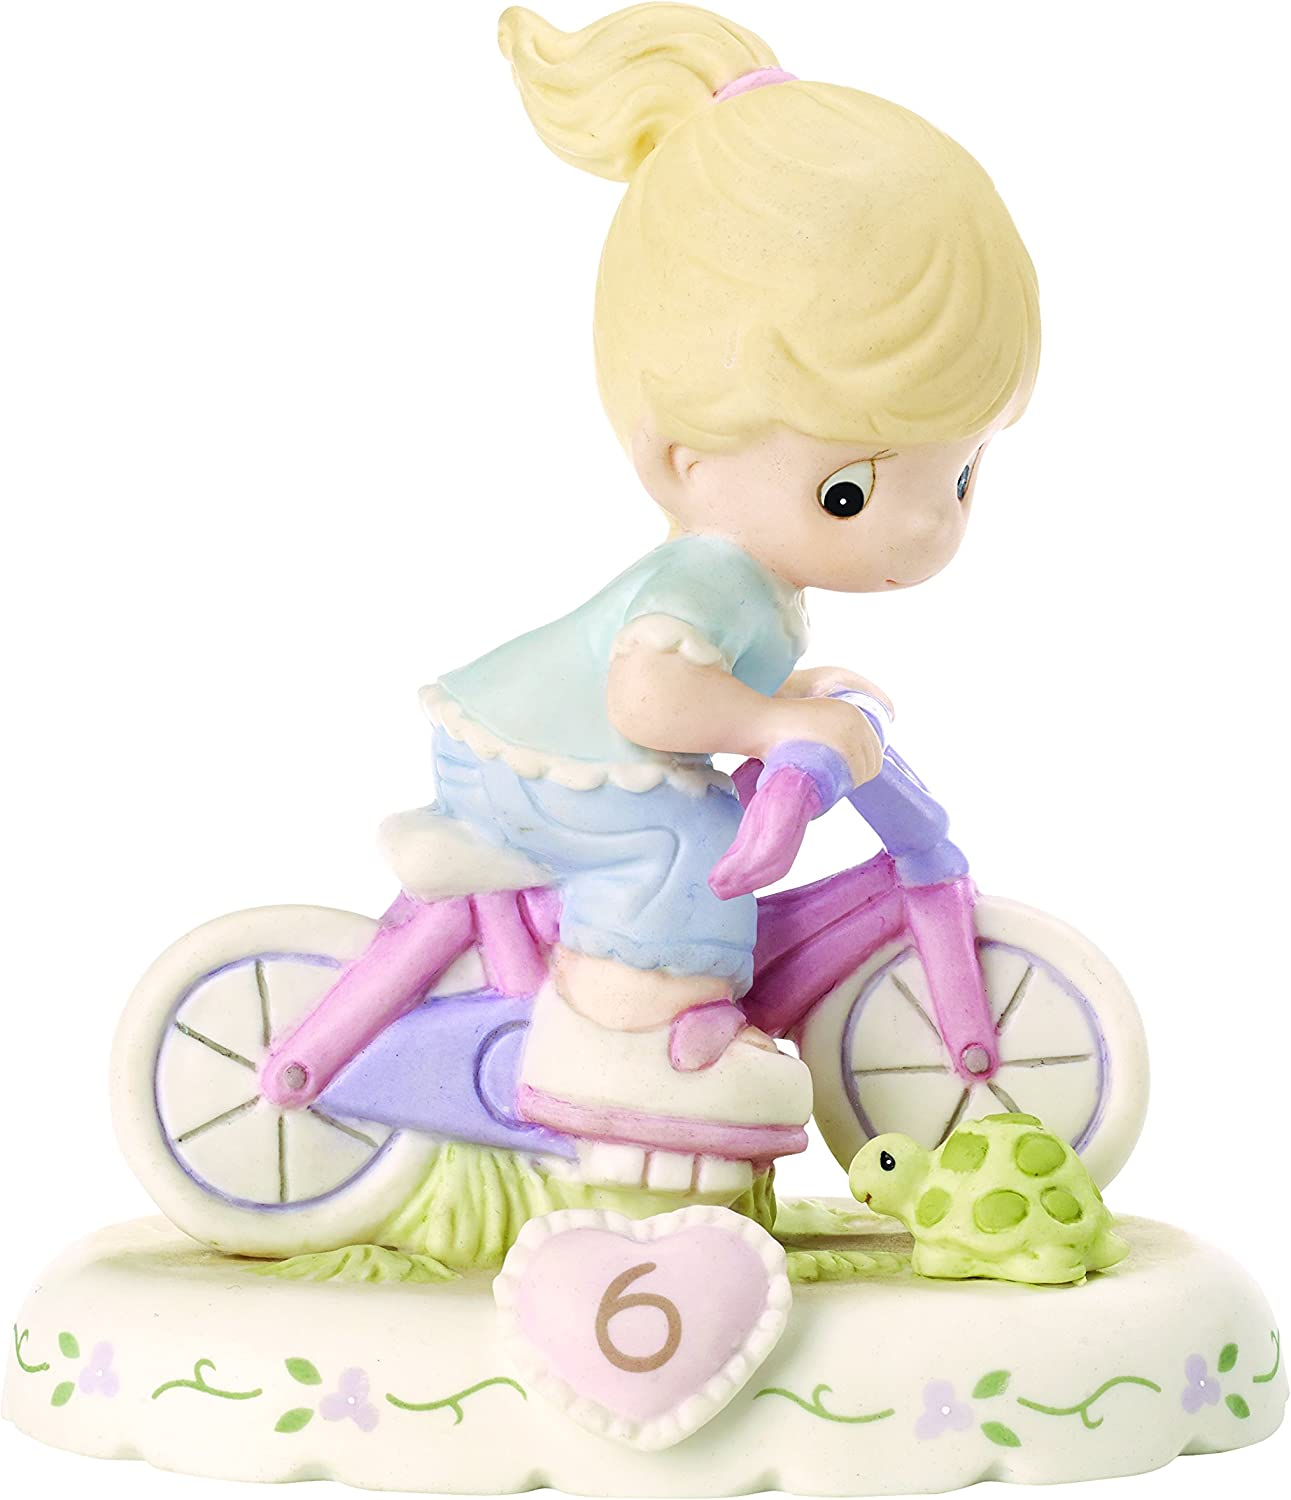 Precious Moments 152012 Growing In Grace Age 6 Girl Bisque Porcelain Figurine  Blonde